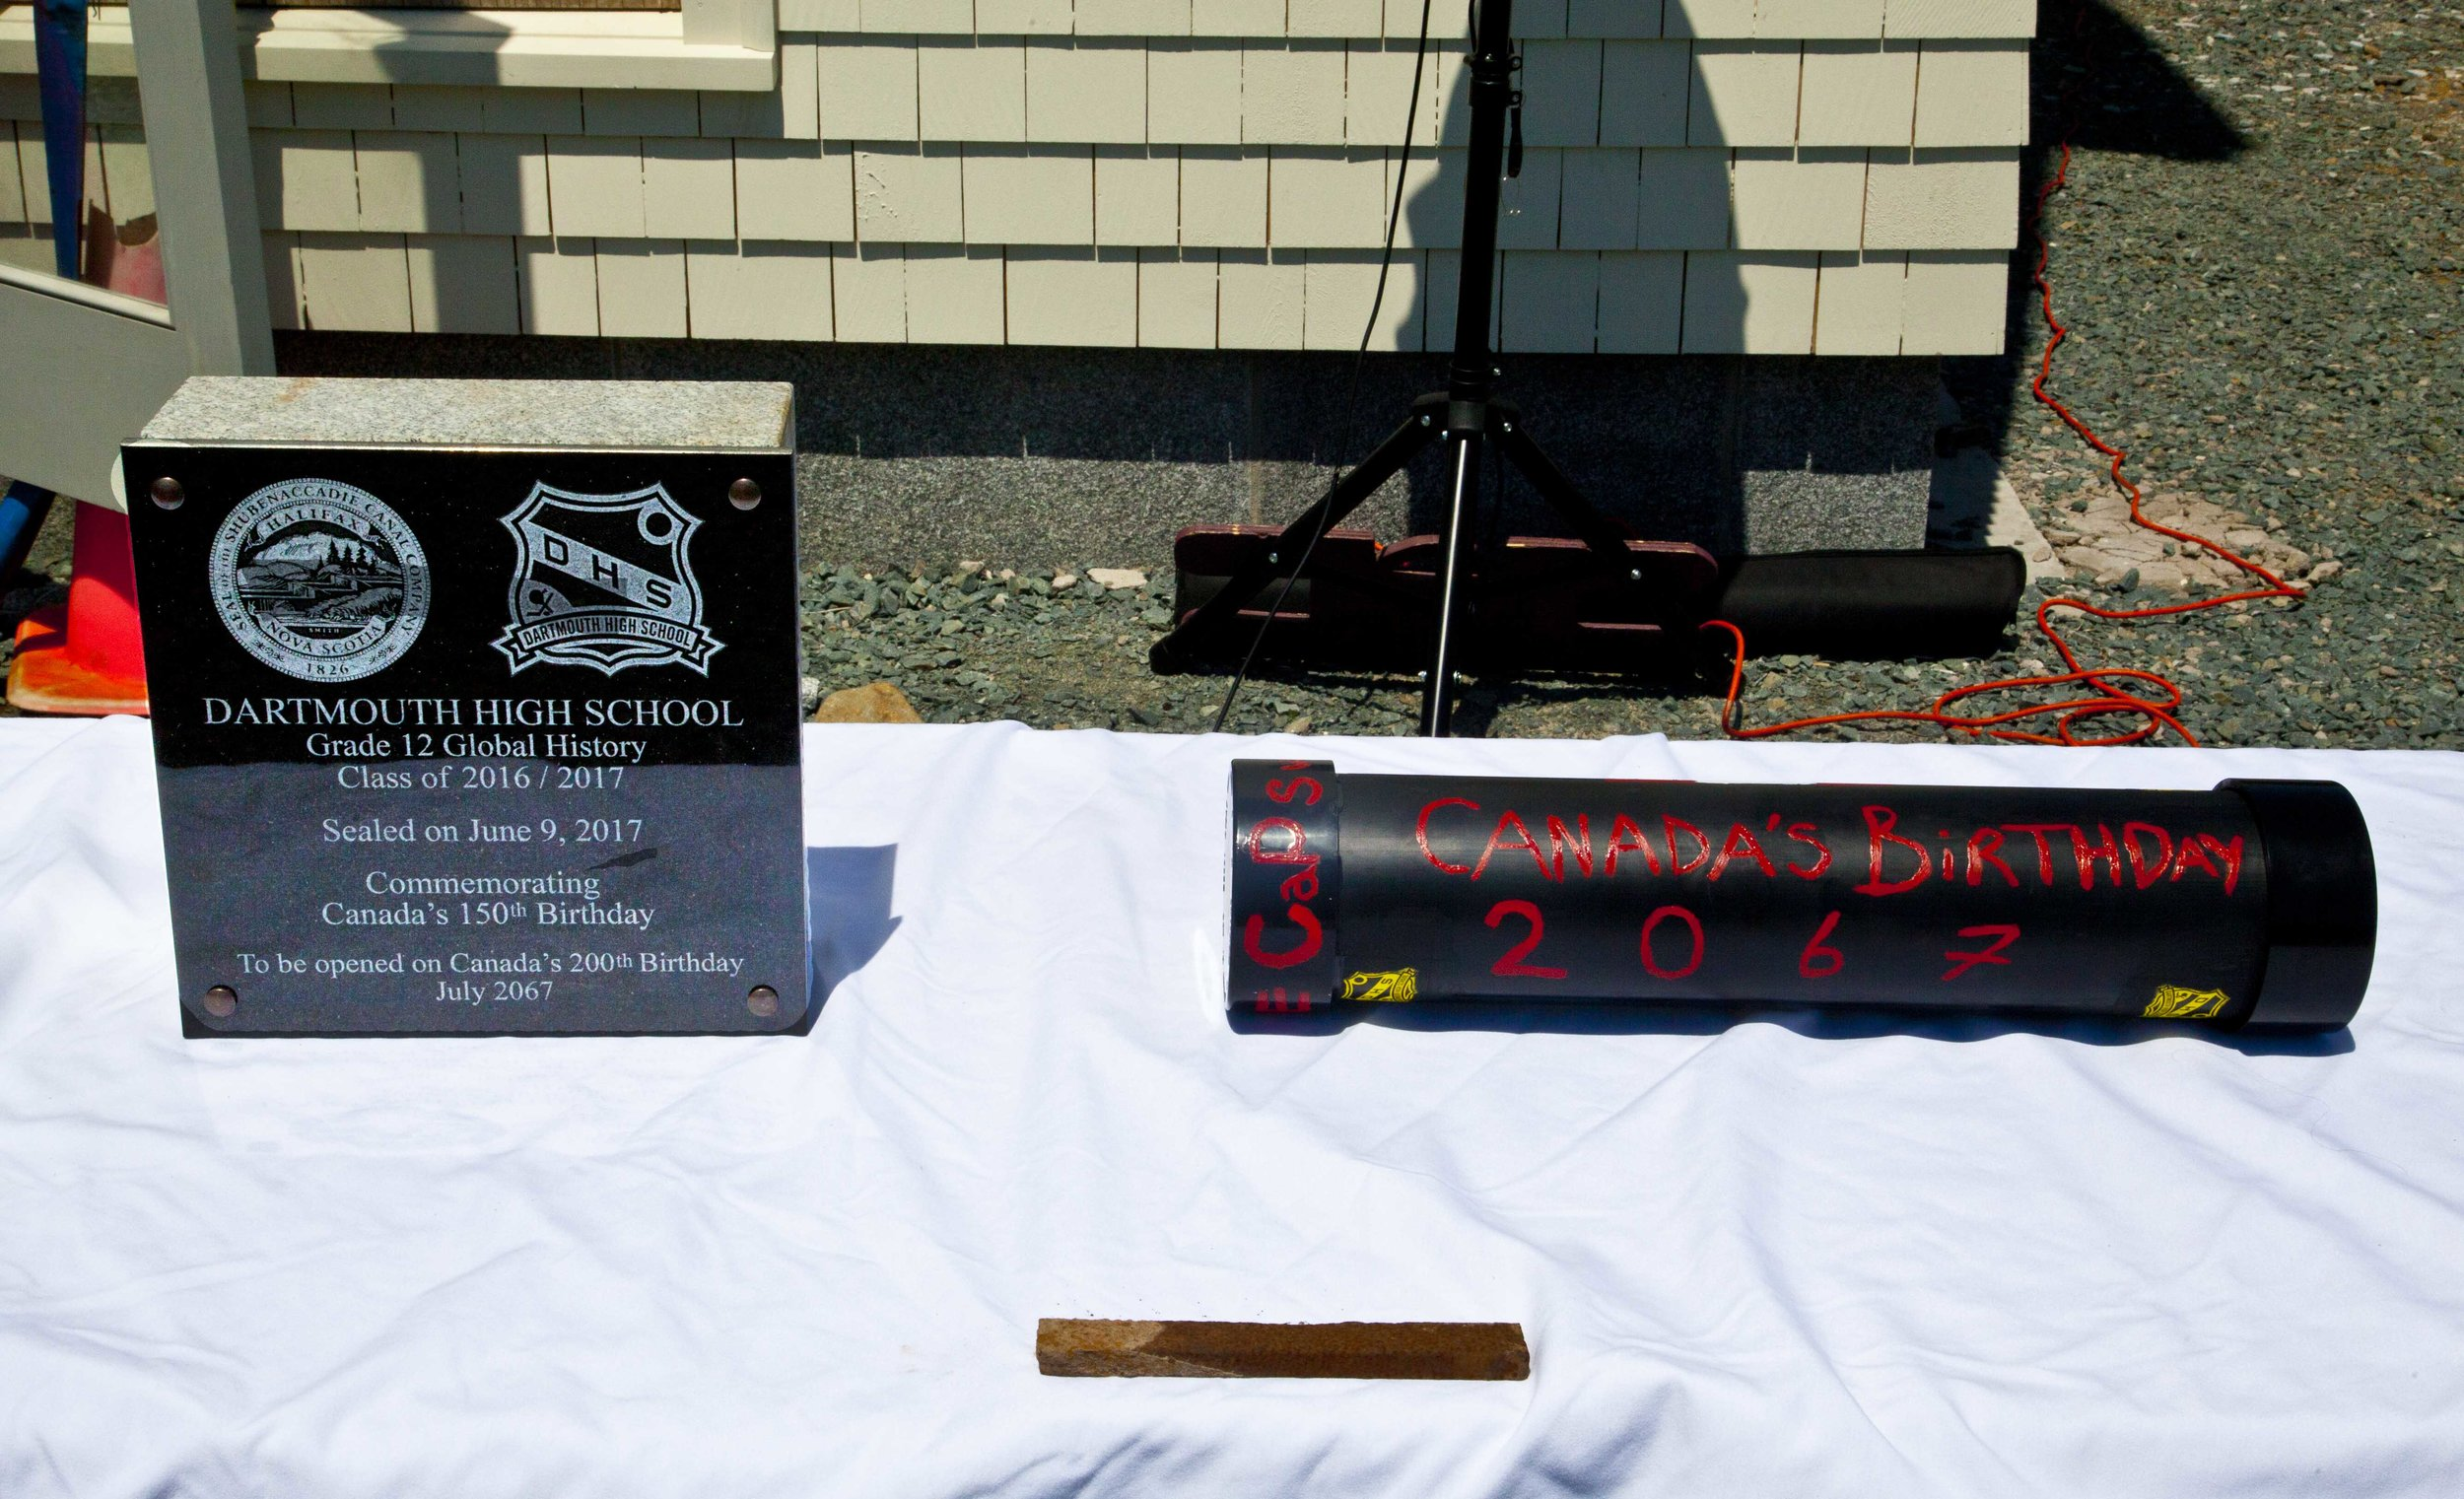 Plaque and time capsule on display at the event.